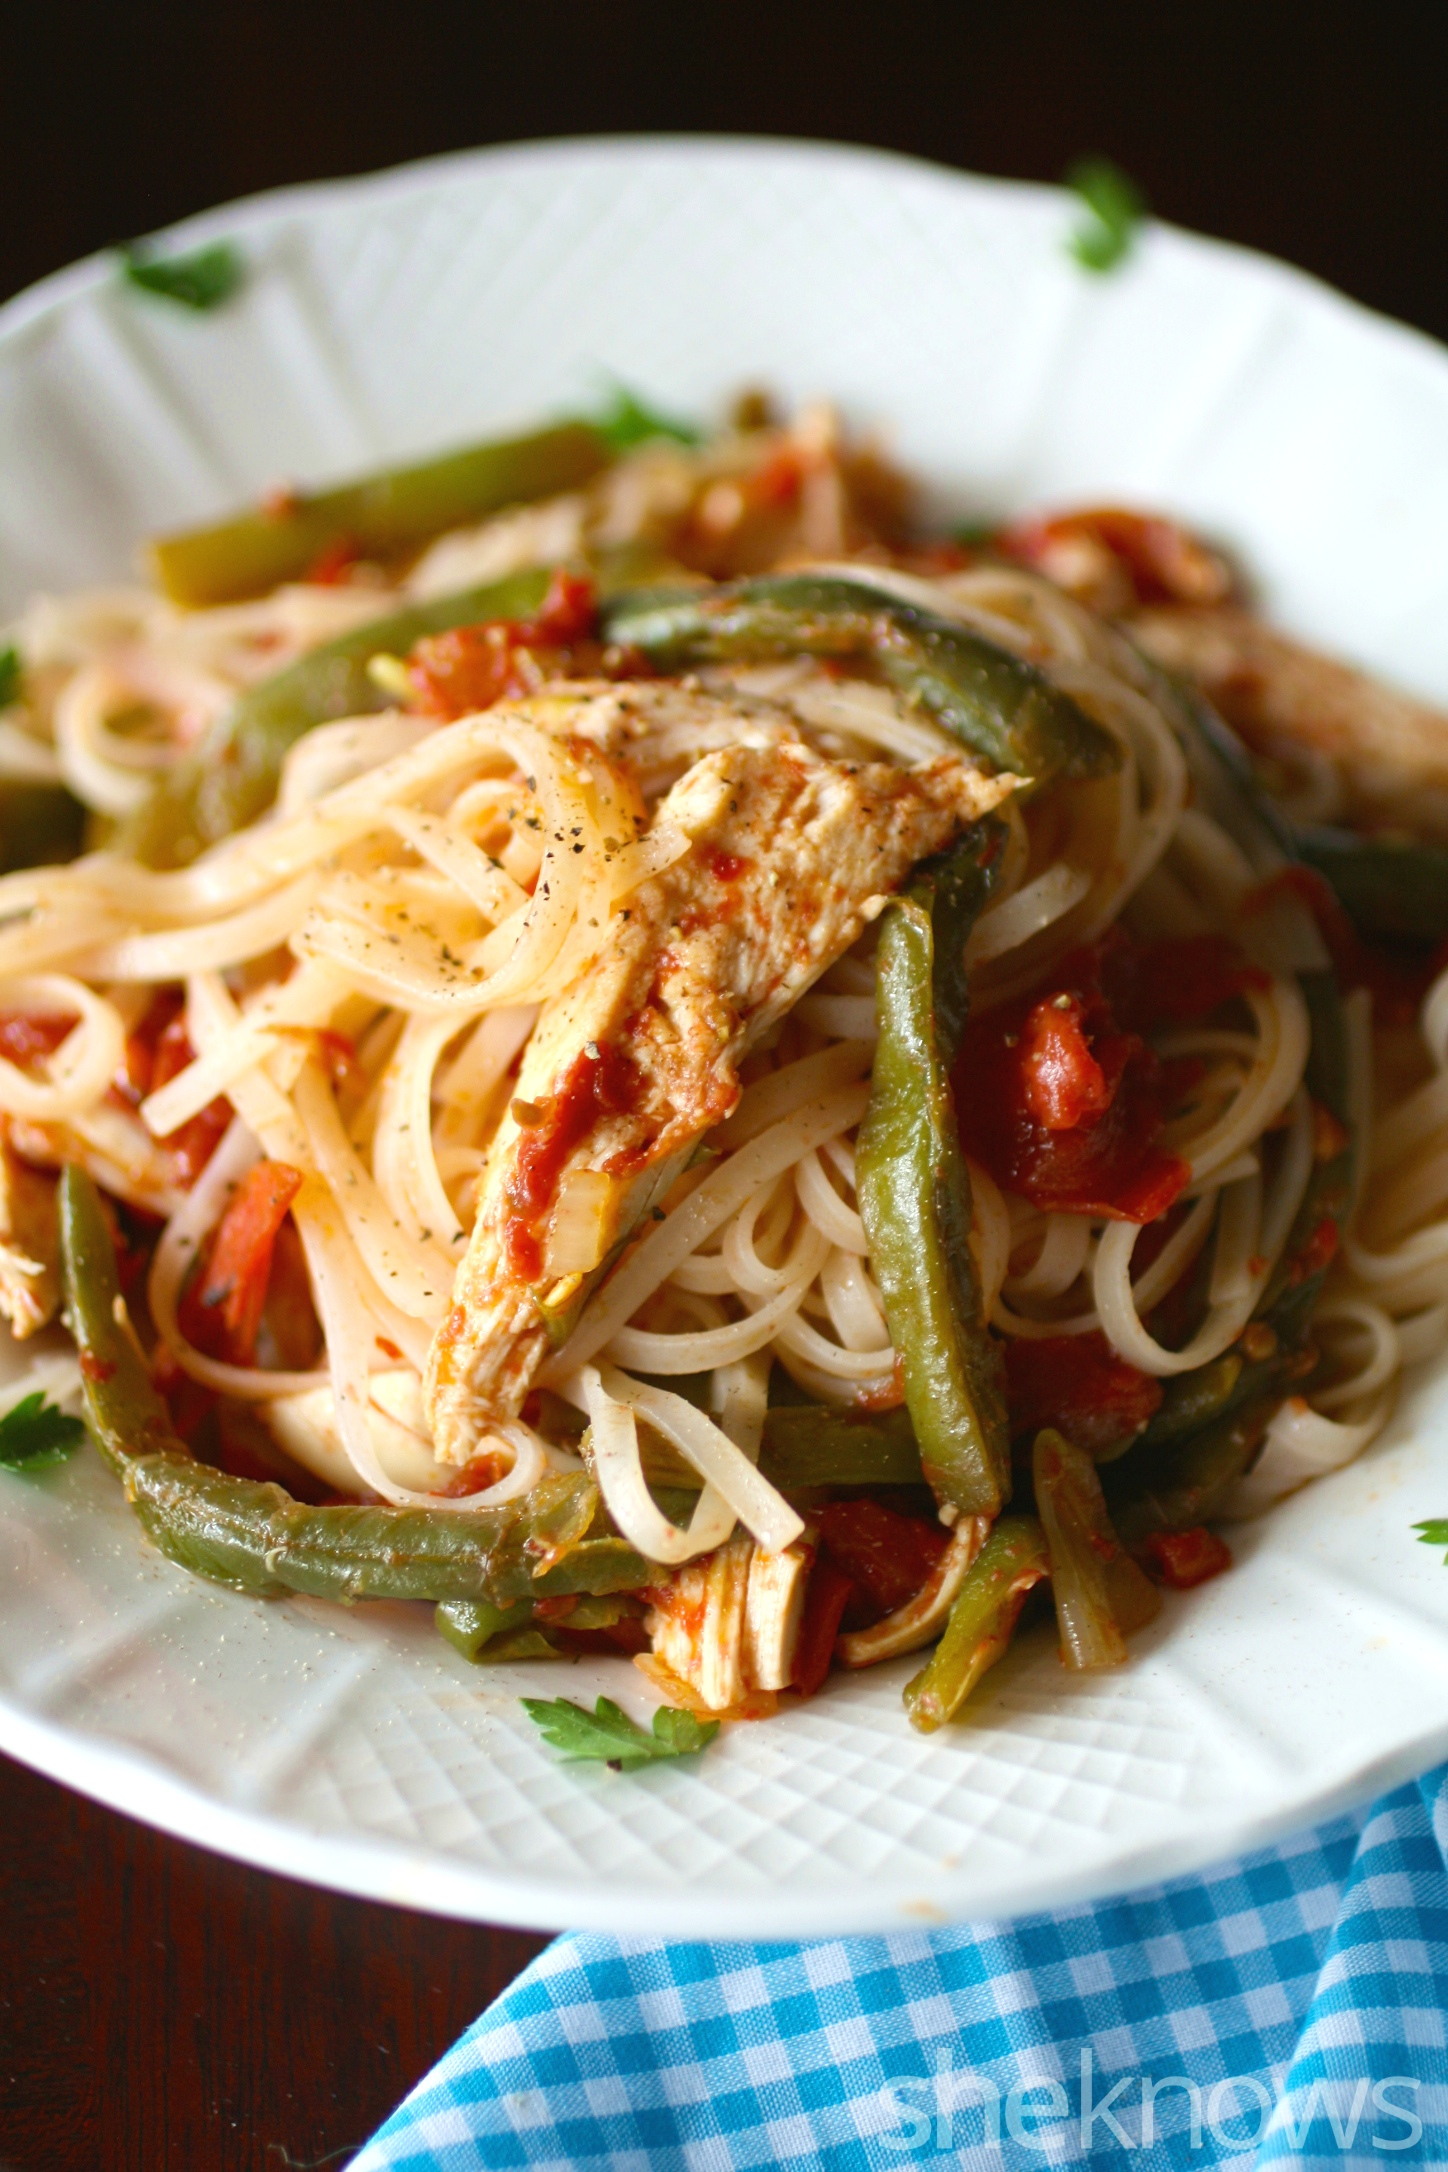 Serve something special that's super simple to make: 20-minute rice noodles with chicken in chili sauce